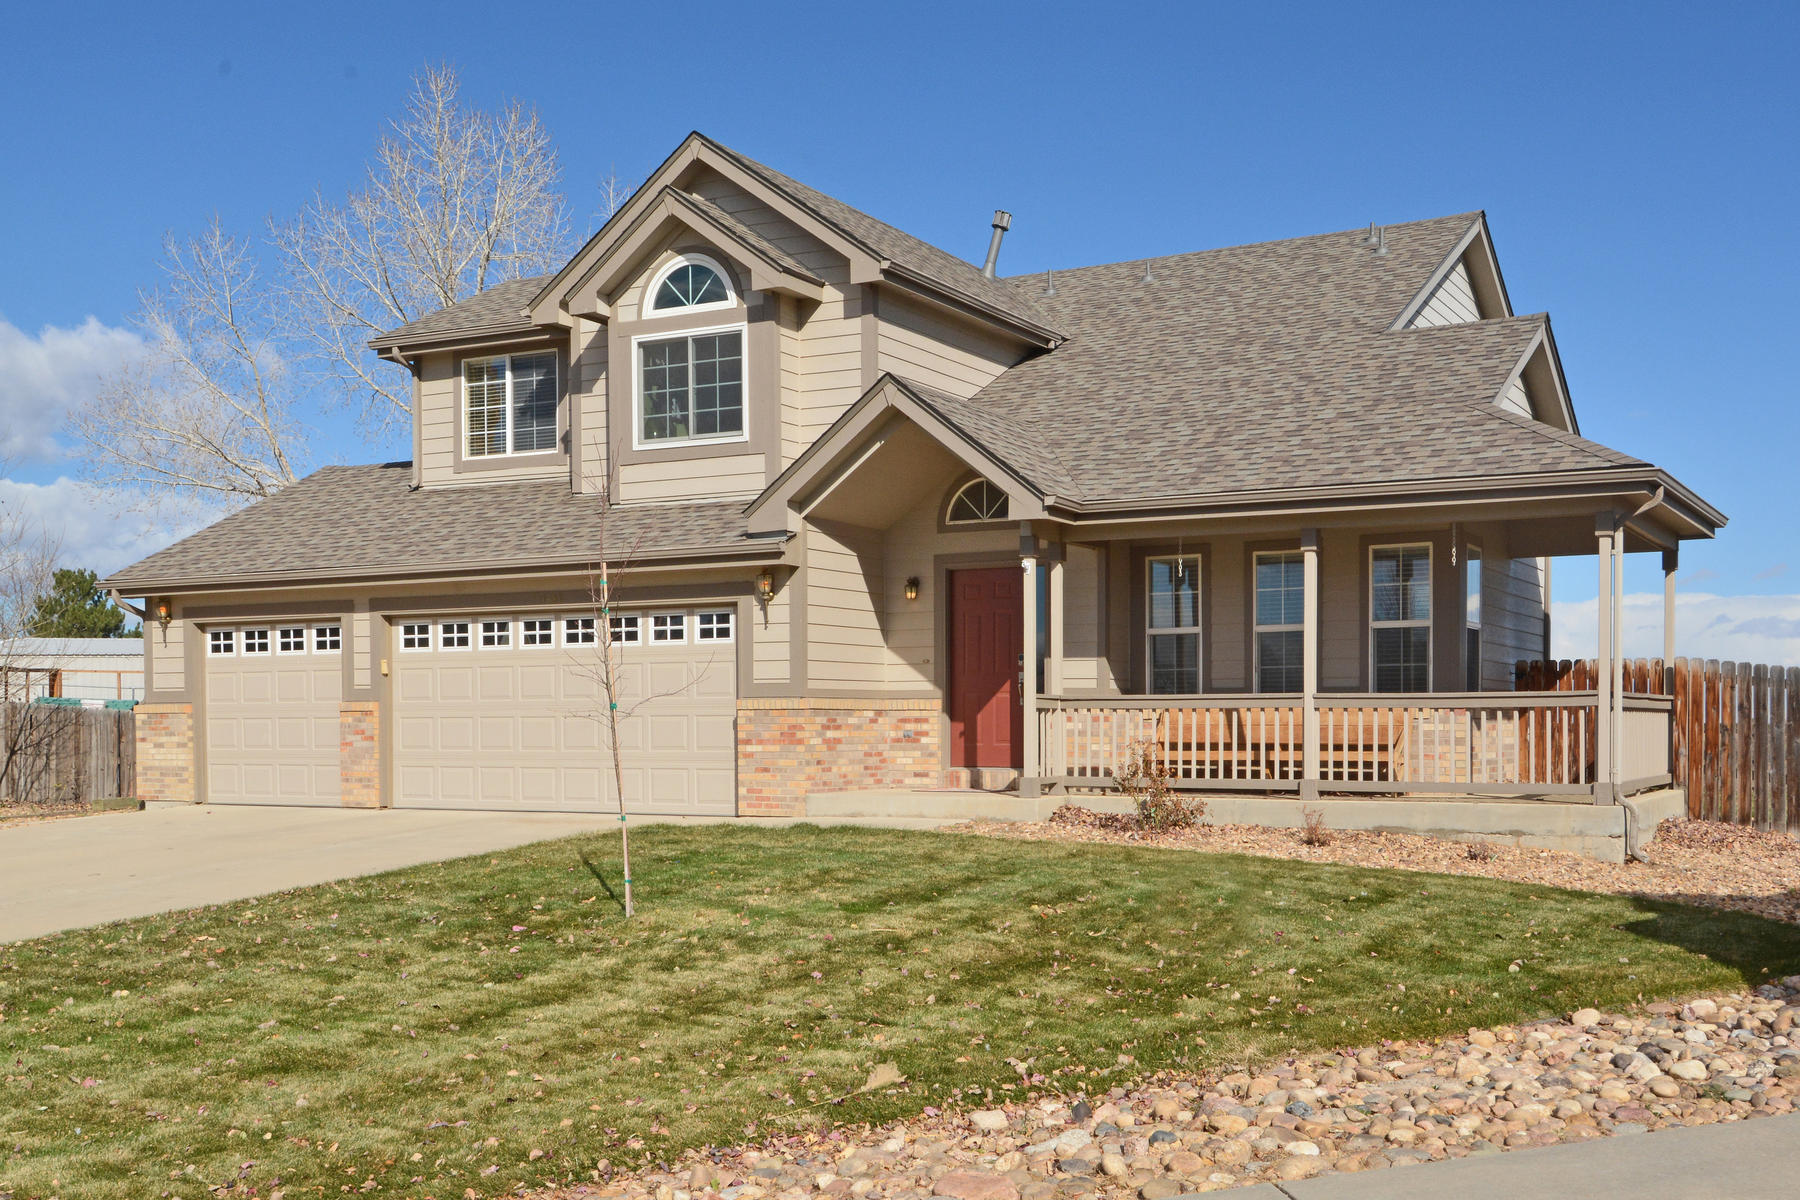 Single Family Home for Active at Private Location on a Quiet Cul-De-Sac with Forever Views 11489 Daisy Court Firestone, Colorado 80504 United States